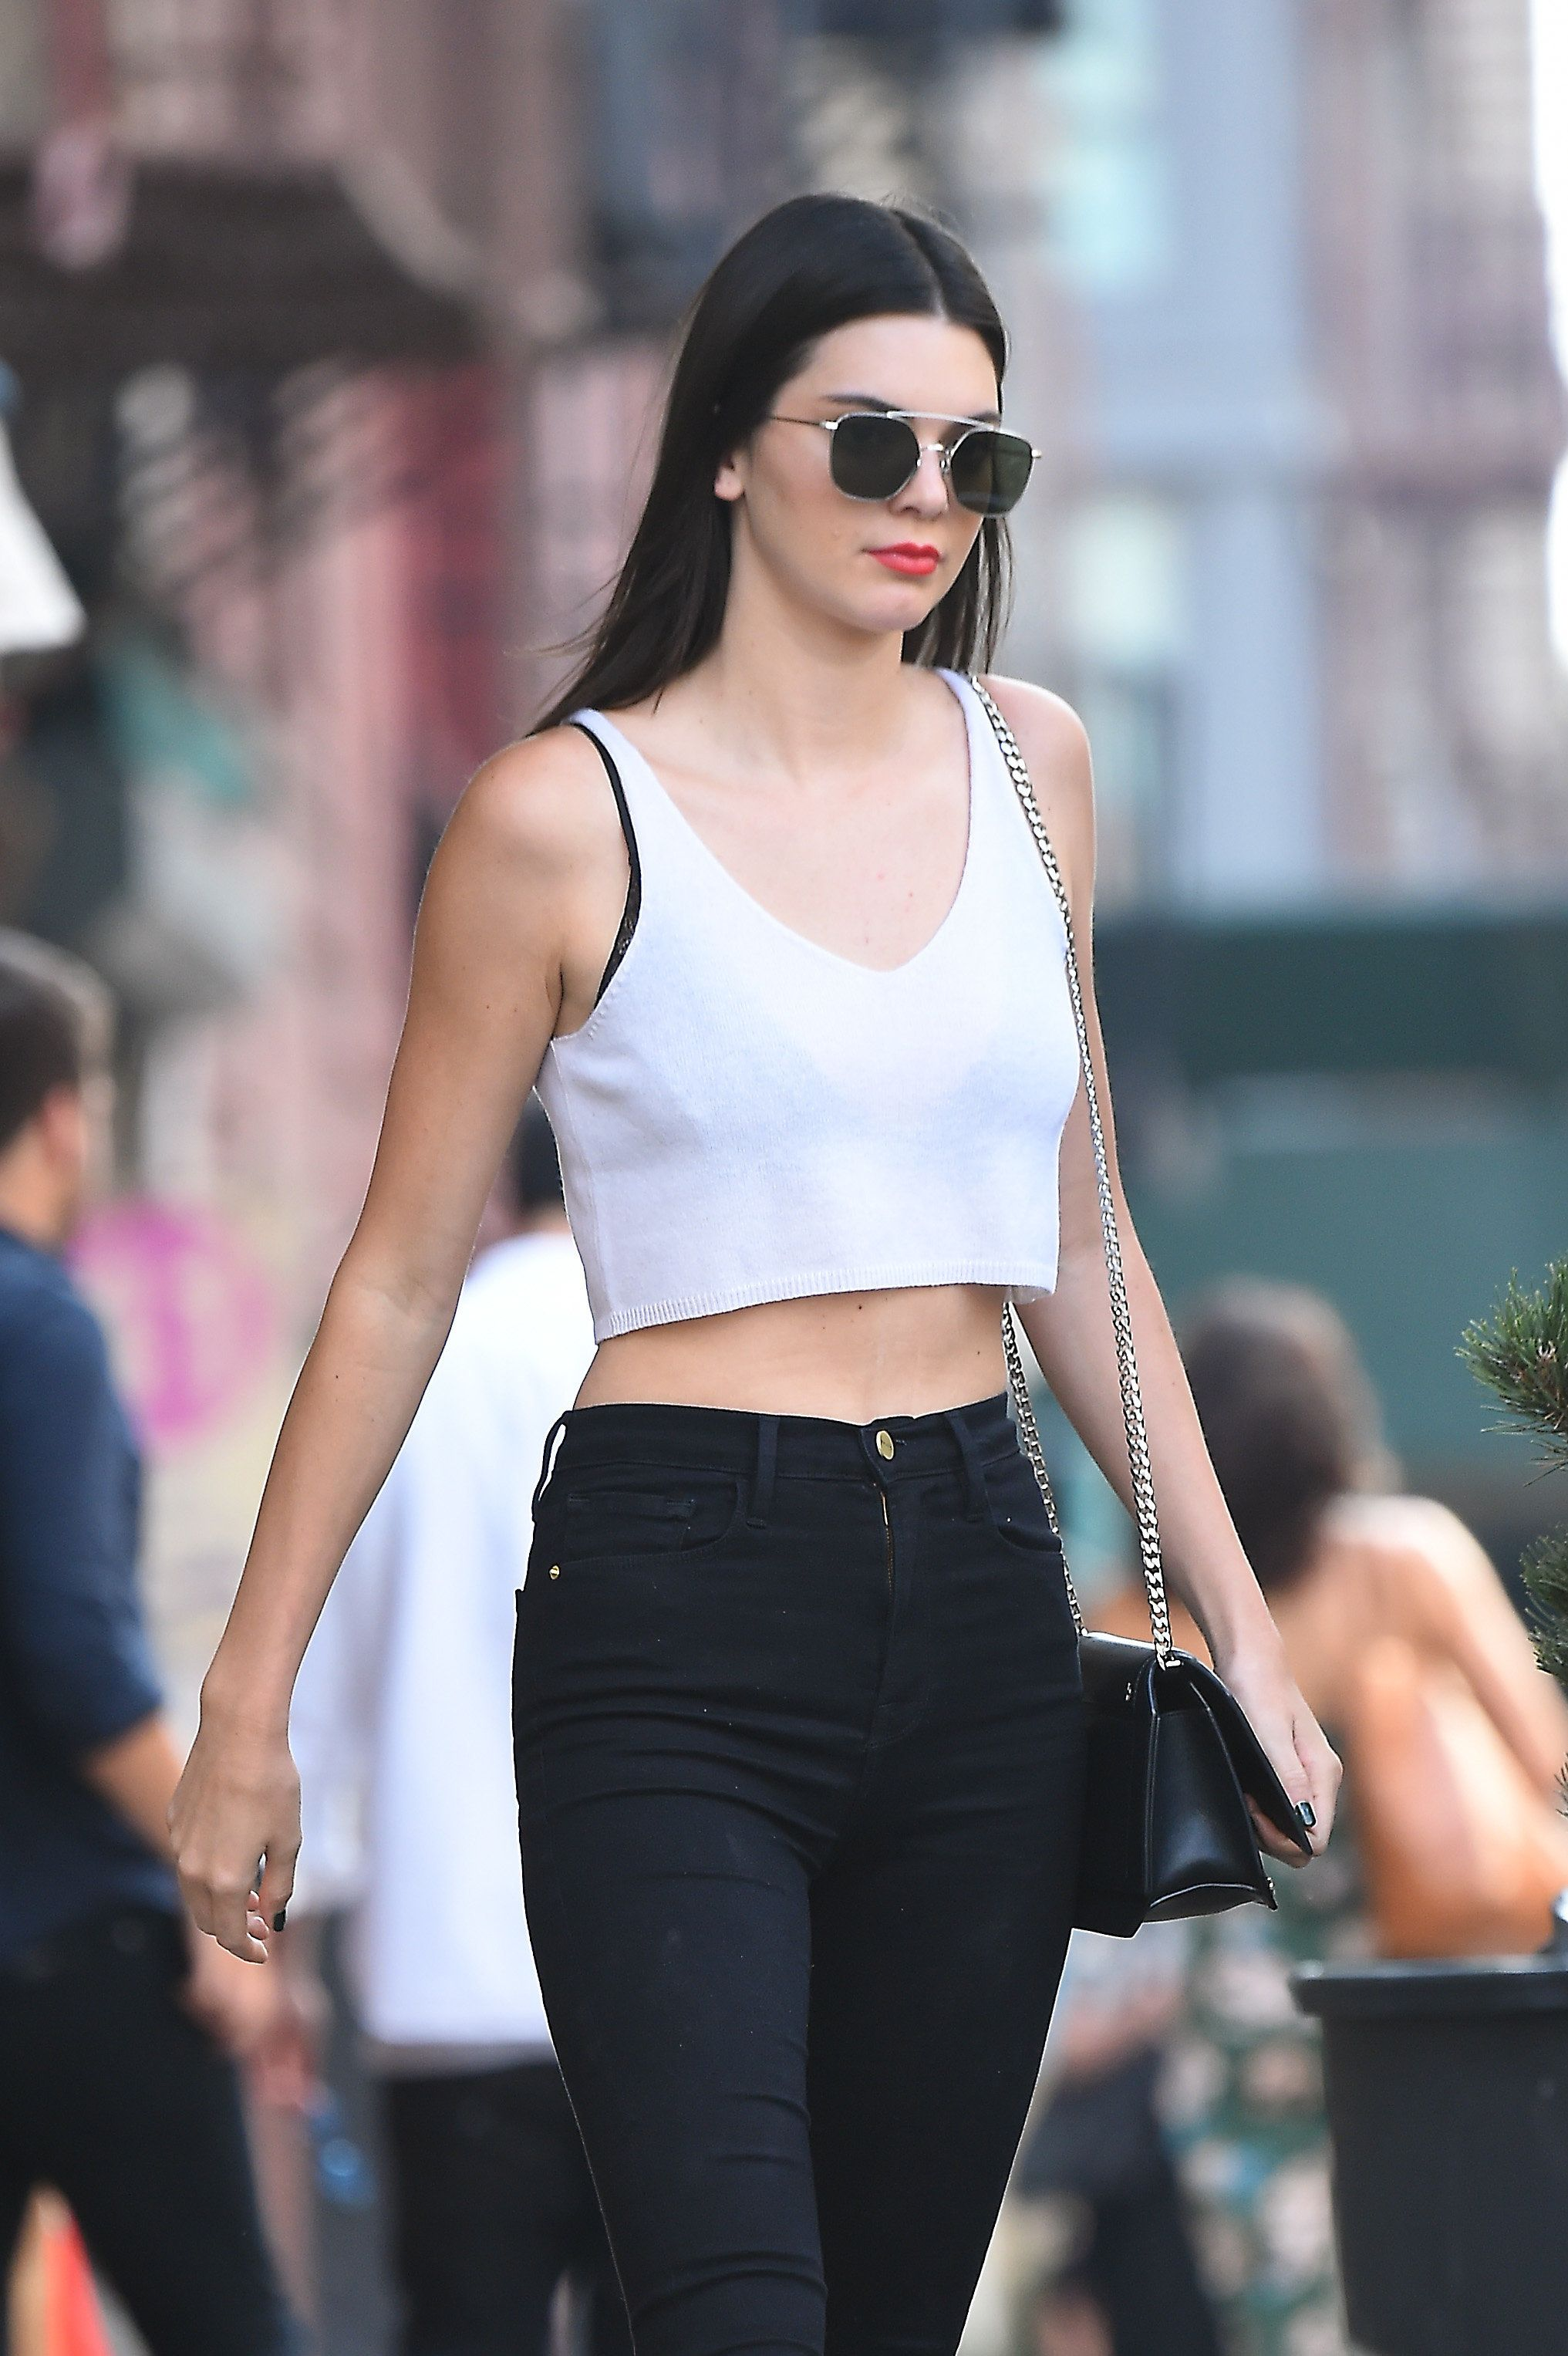 NEW YORK, NY - JULY 22: Kendall Jenner seen out in East Village as she grabs lunch at il Buco Alimentari & Vineria on July 22, 2016 in New York, NY. (Photo by Josiah Kamau/BuzzFoto via Getty Images)